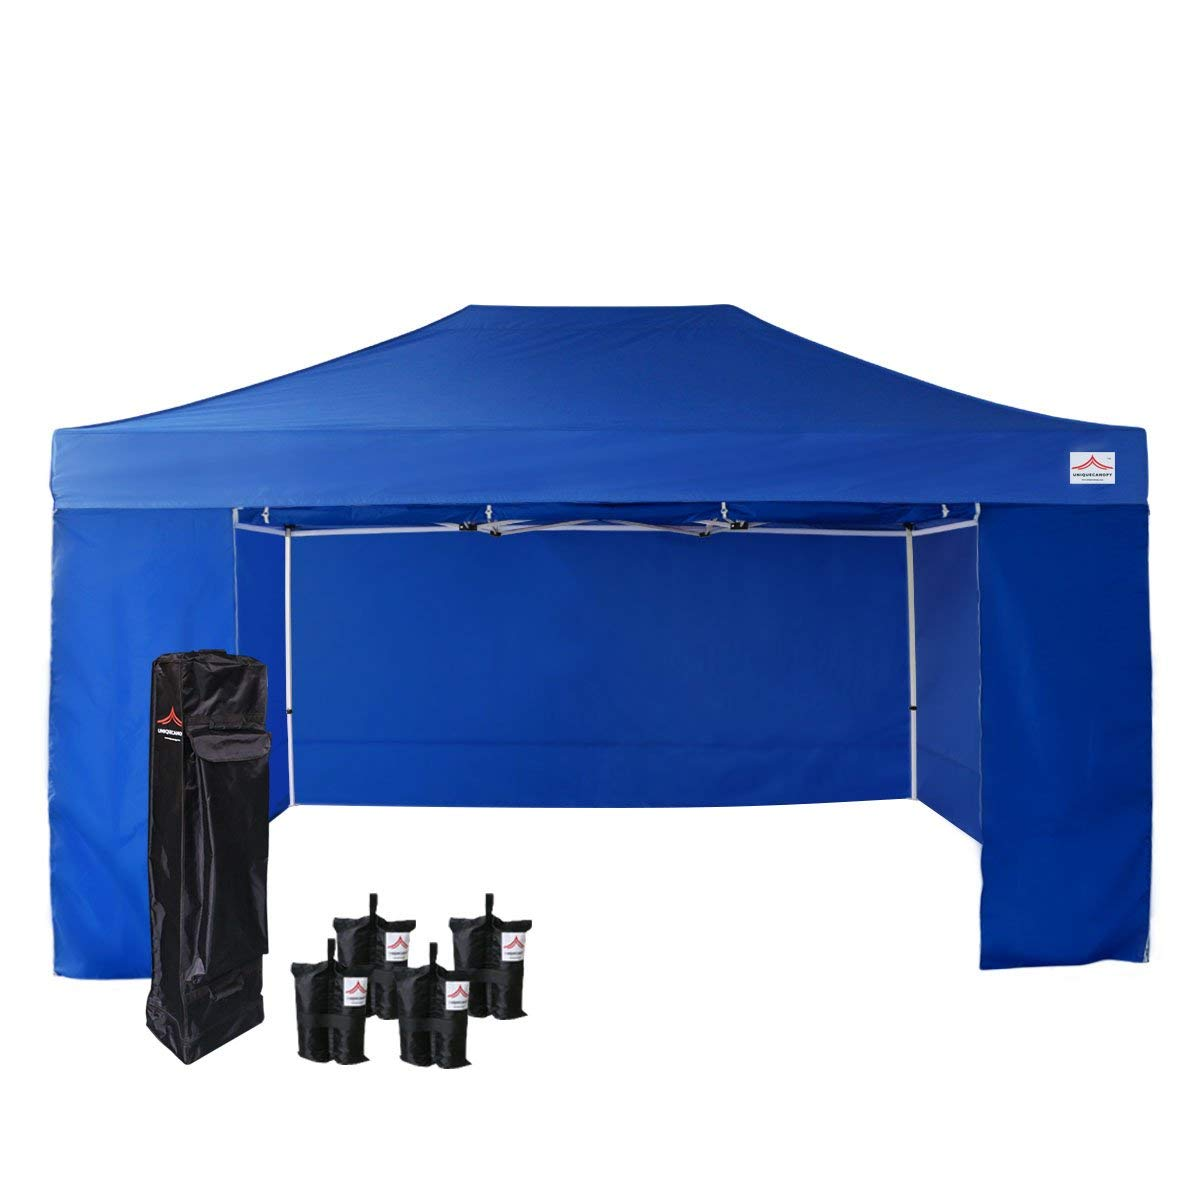 UNIQUECANOPY 500D Enhanced 10x15 Ez Pop up Canopy Portable Folded Commercial Canopy Car Shelter Wedding Party Show Tent with 4 Zippered Side Walls and Wheeled Carrying Bag Blue